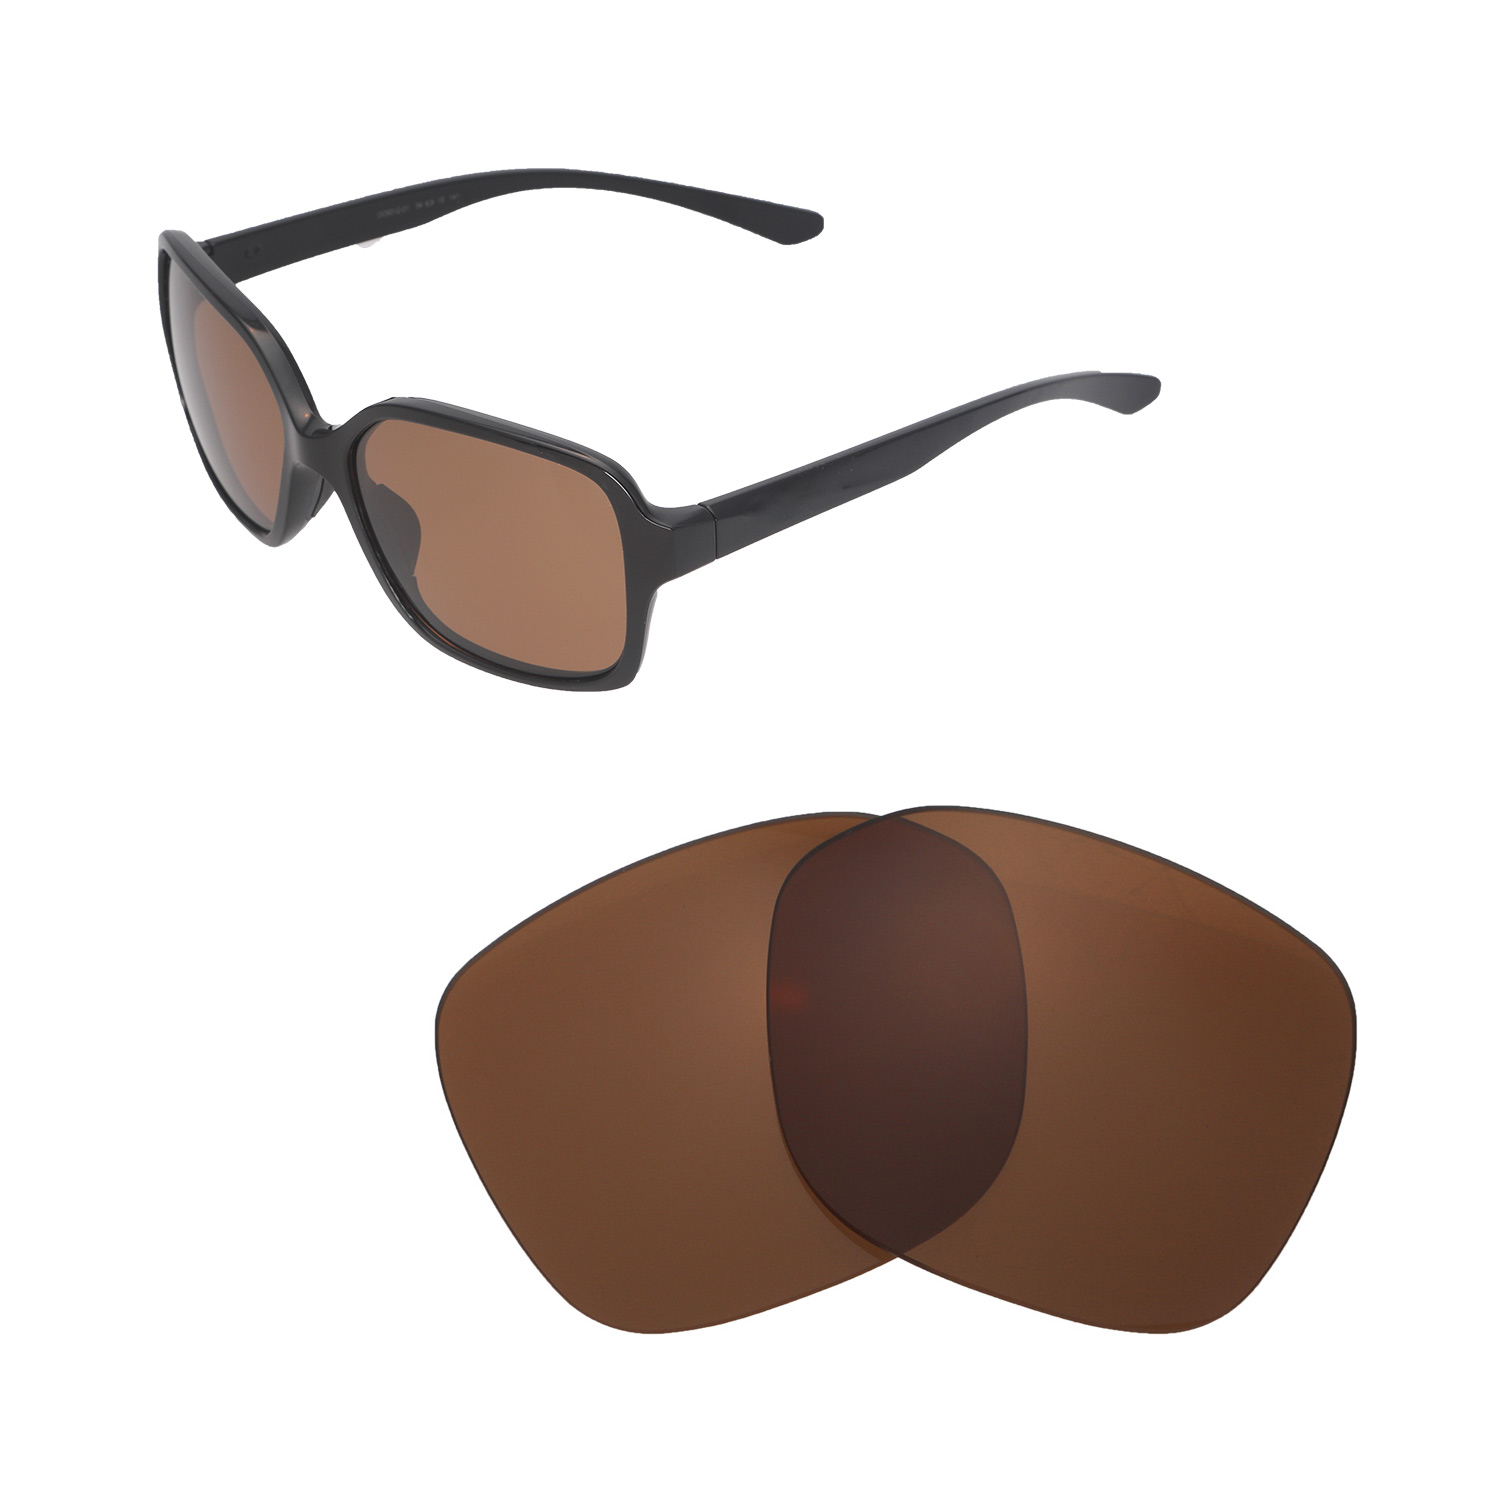 bfe51fa458 Walleva Replacement Lenses for Oakley Proxy Sunglasses - Multiple ...